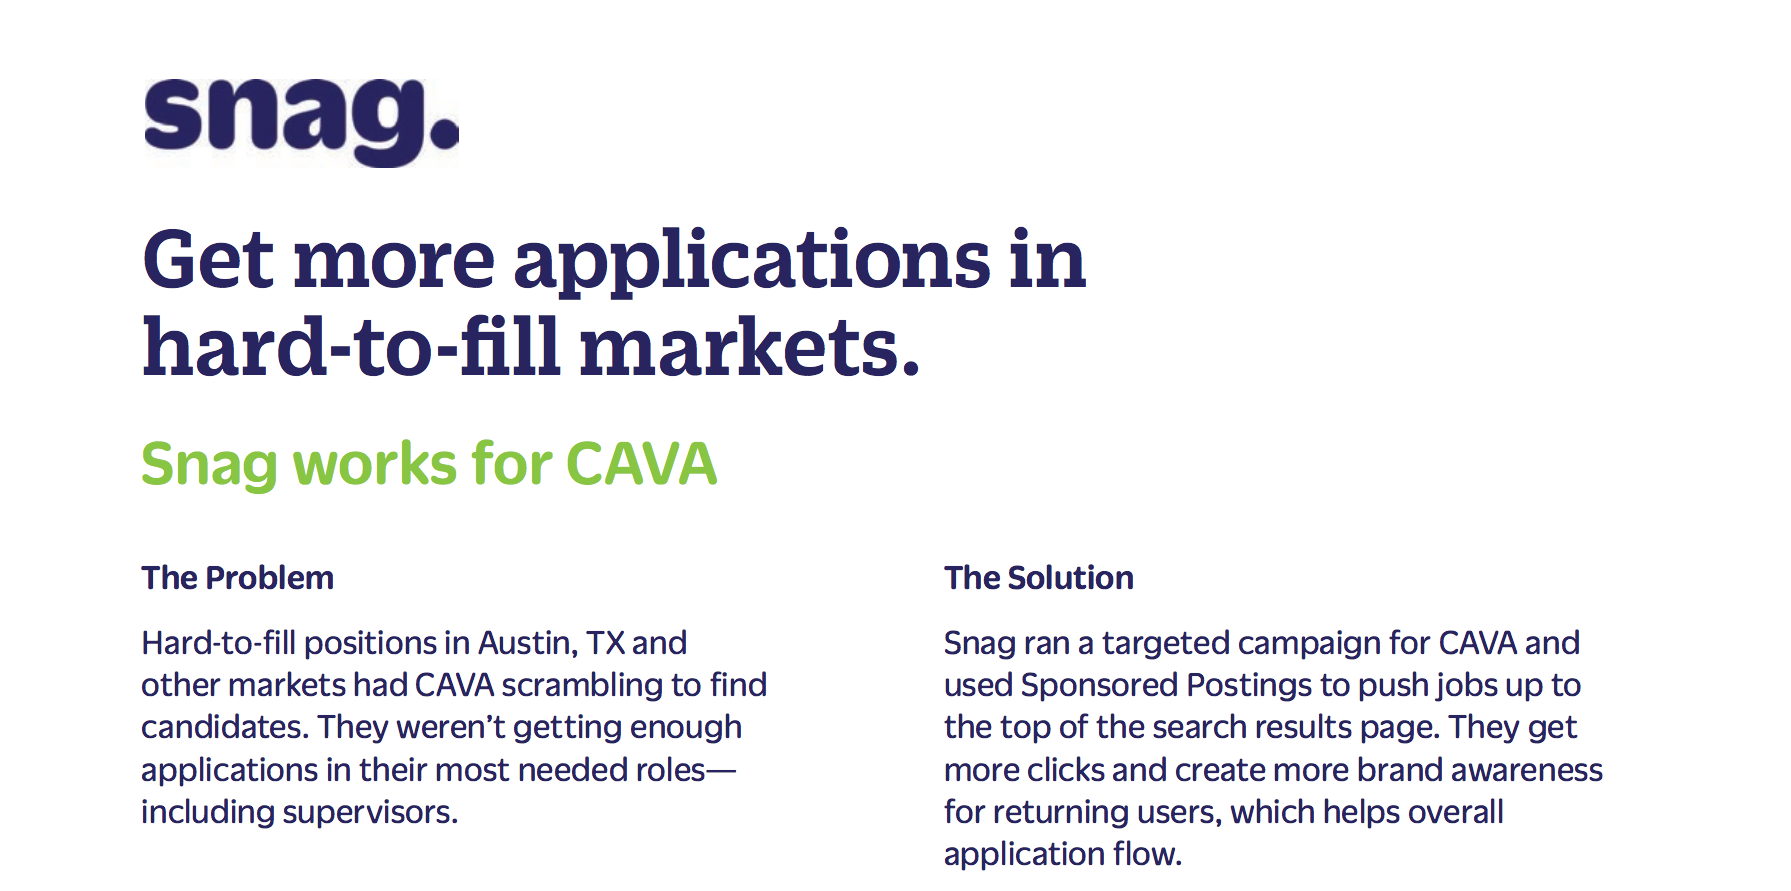 cava-snag-case-study-sponsored-postings